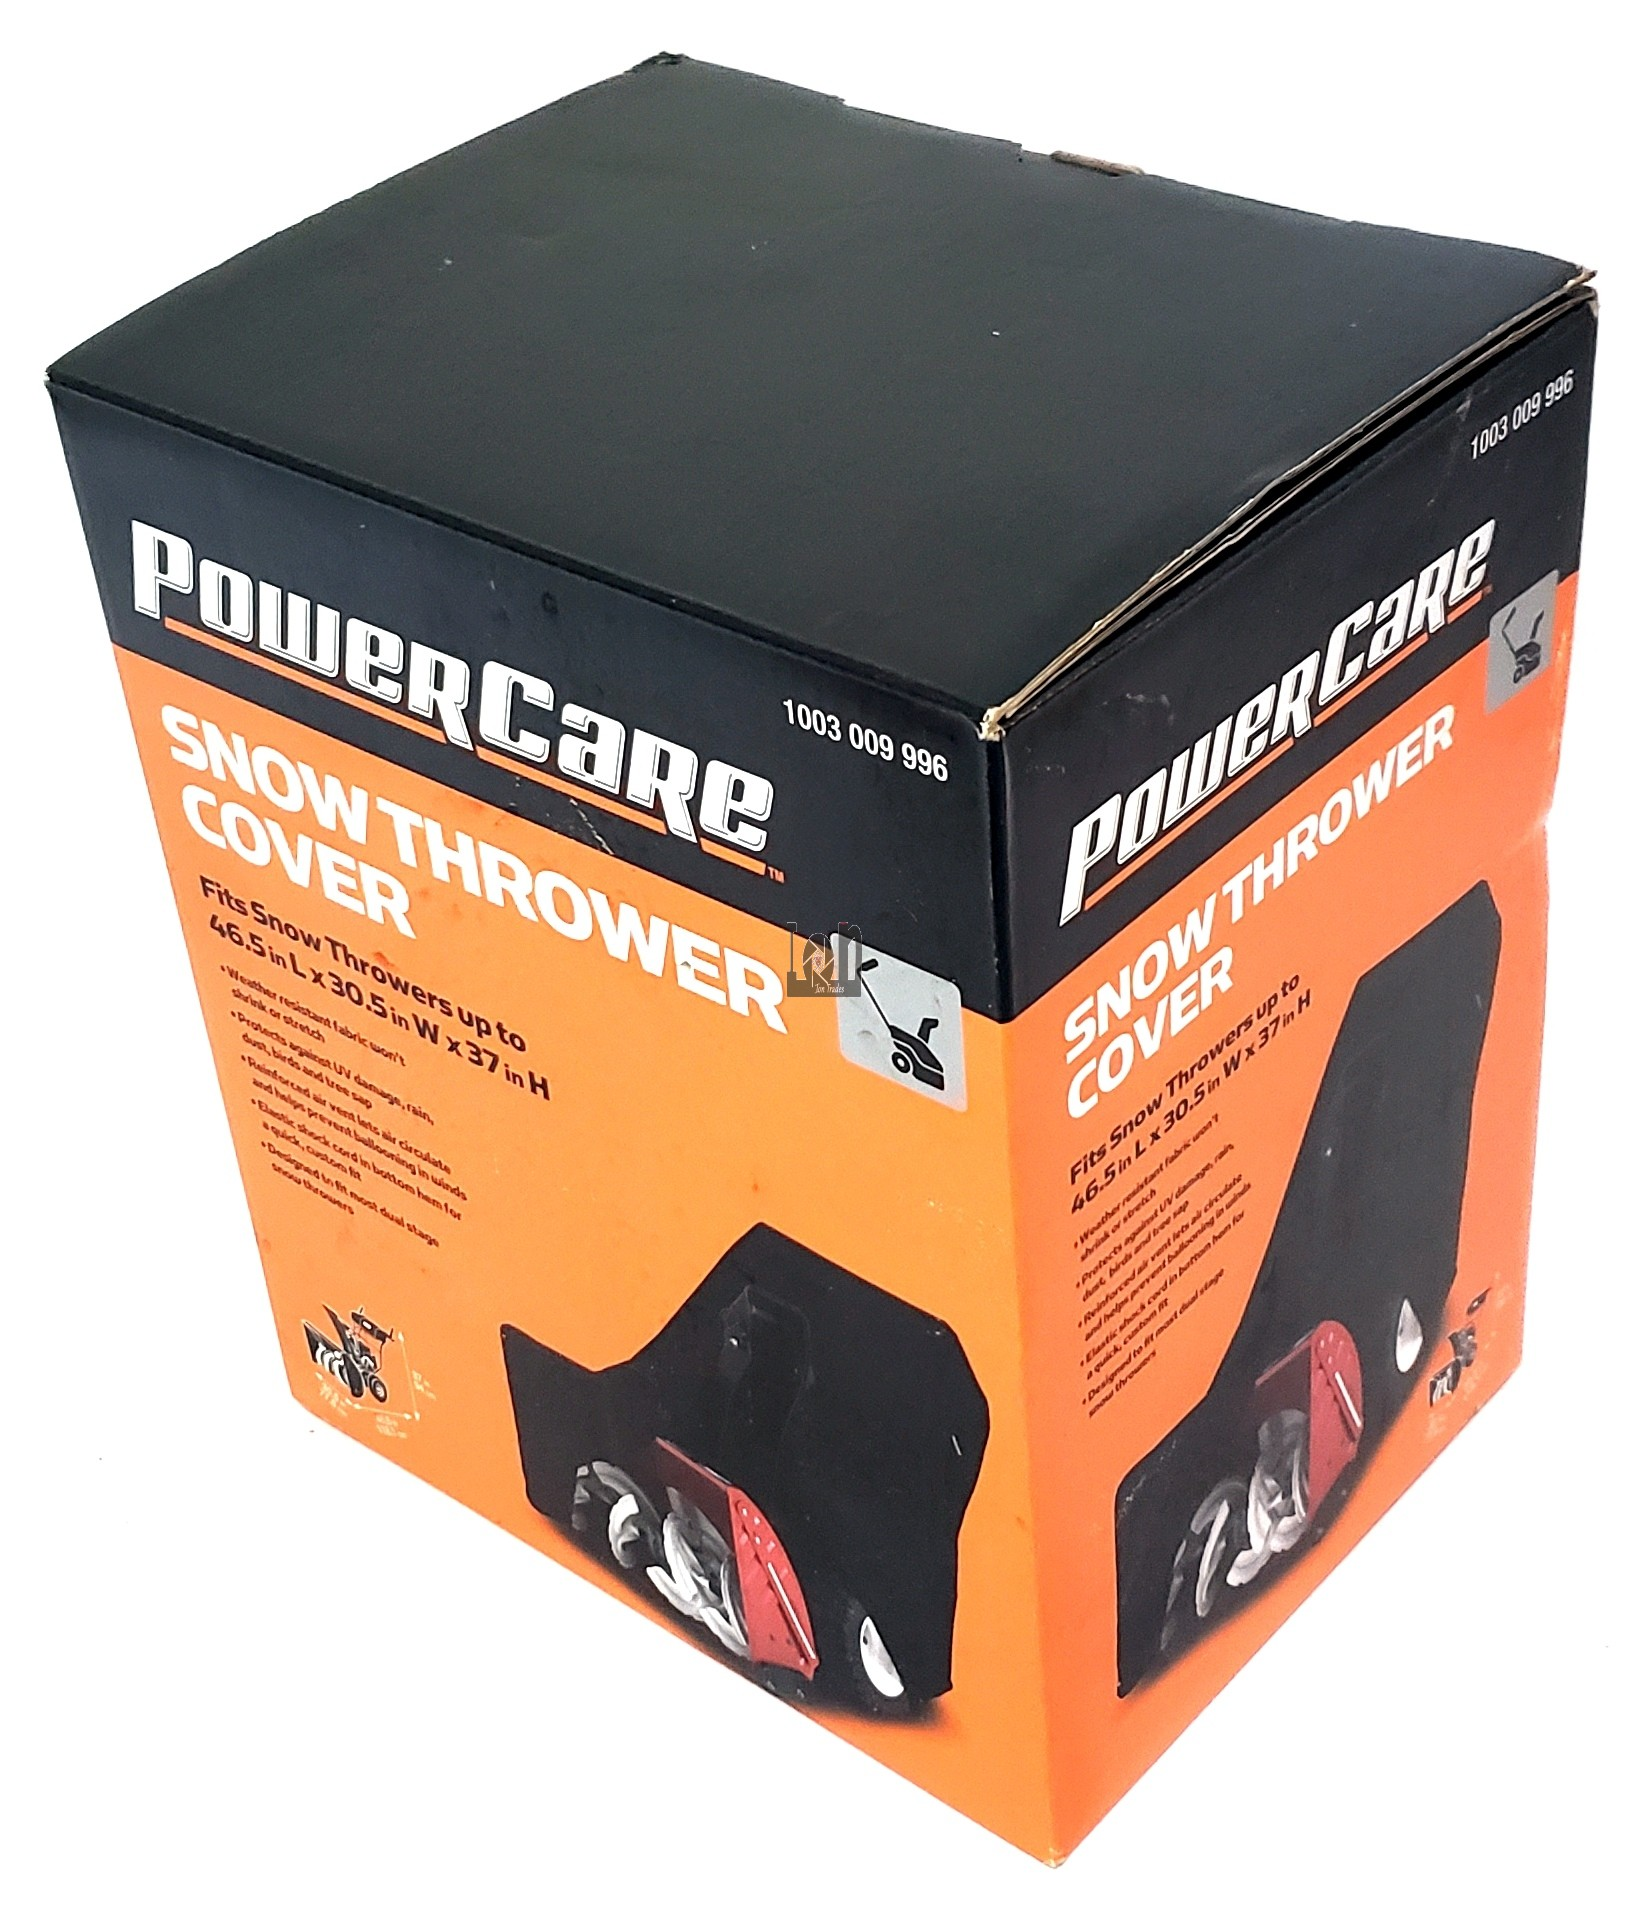 Power Care Snow Thrower Cover 46.5 x 30.5 x 37